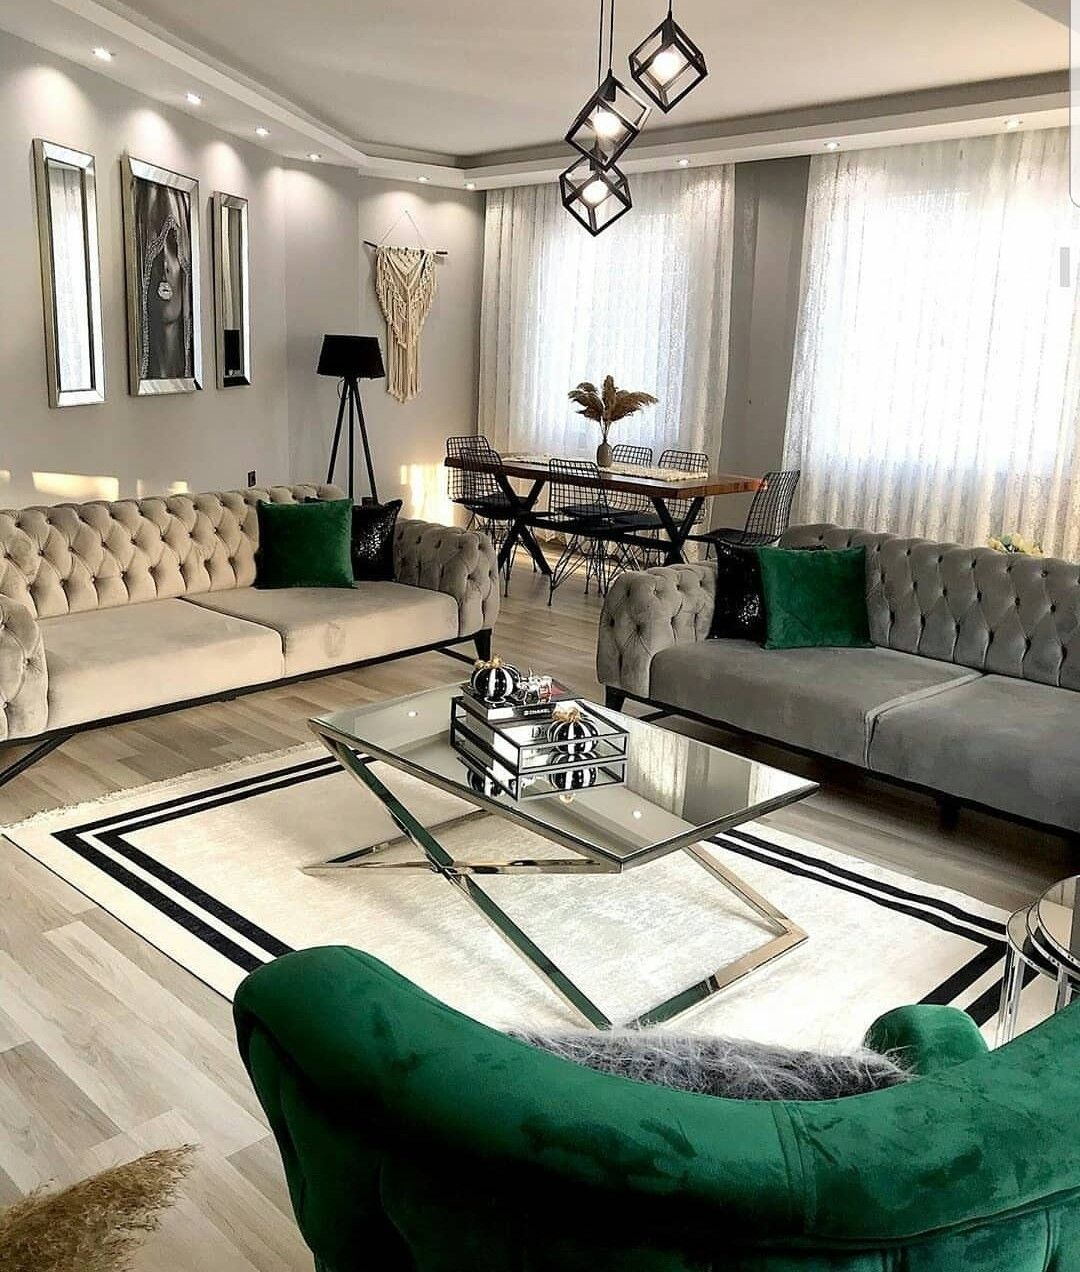 Pin By Yulaymi Lopez On استقبال In 2020 Luxury Living Room Living Room Decor Apartment Living Room Designs